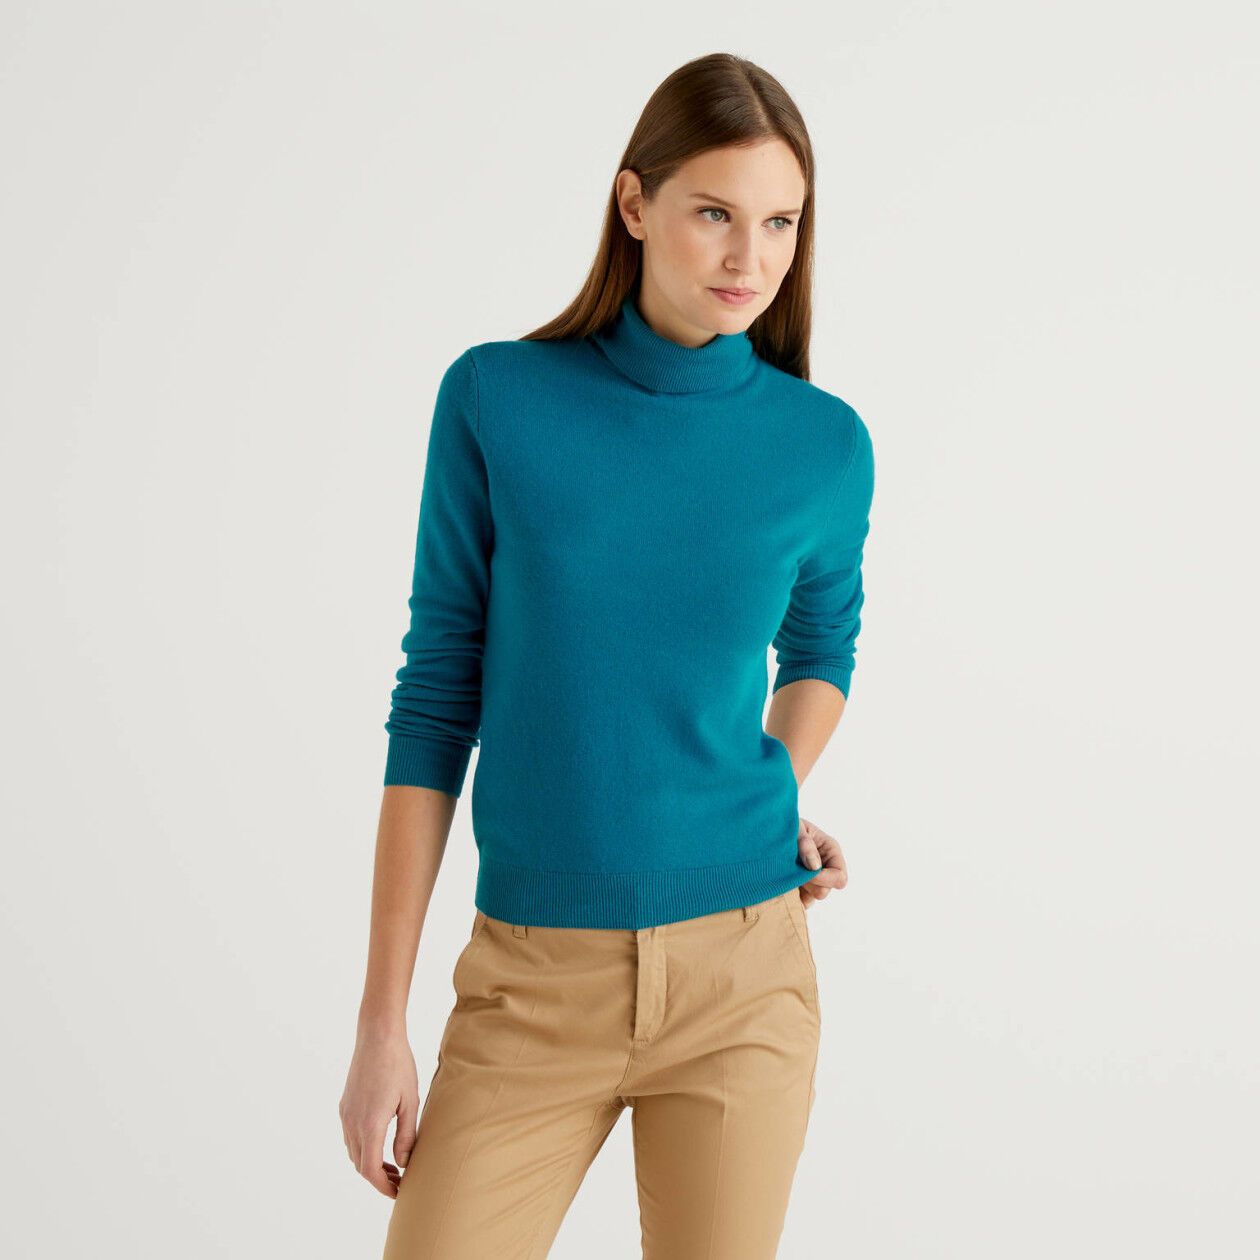 Teal turtleneck sweater in pure virgin wool